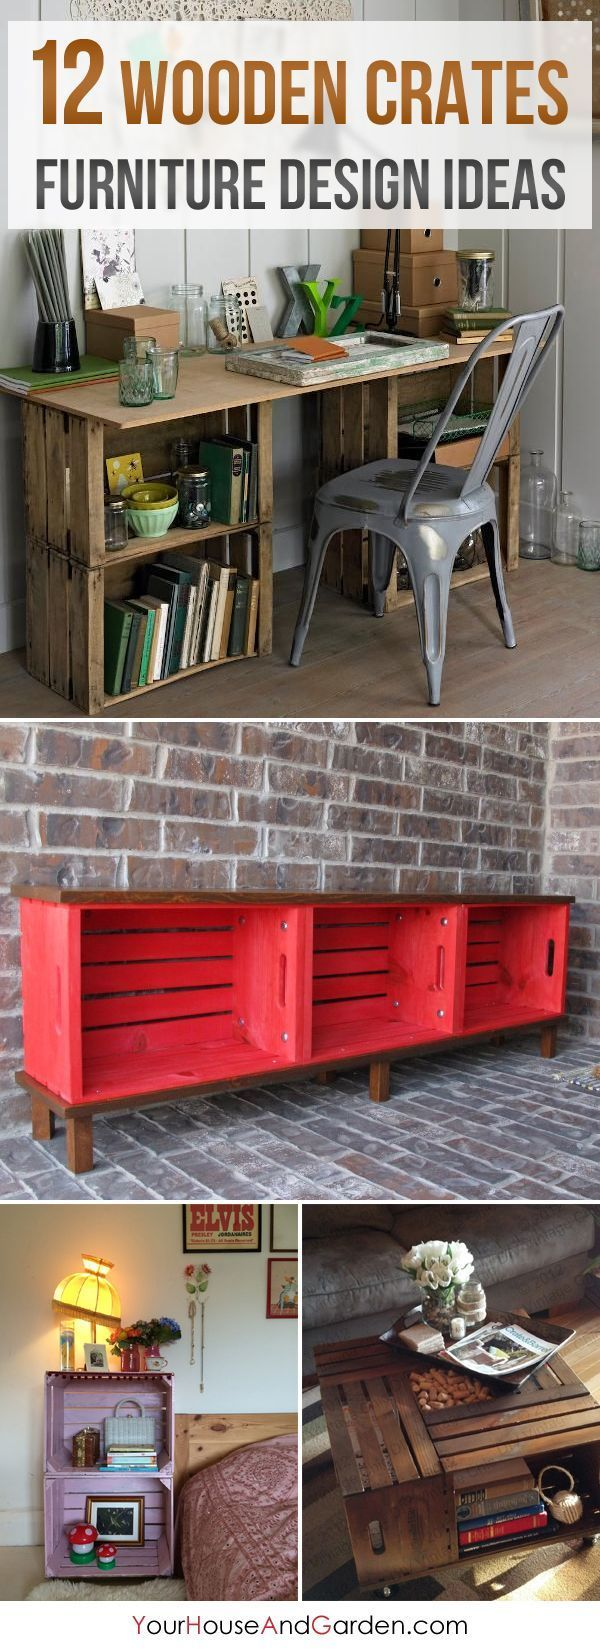 awesome 12 Amazing Wooden Crates Furniture Design Ideas by http://www.best100homedecorpics.club/diy-home-decor/12-amazing-wooden-crates-furniture-design-ideas-2/